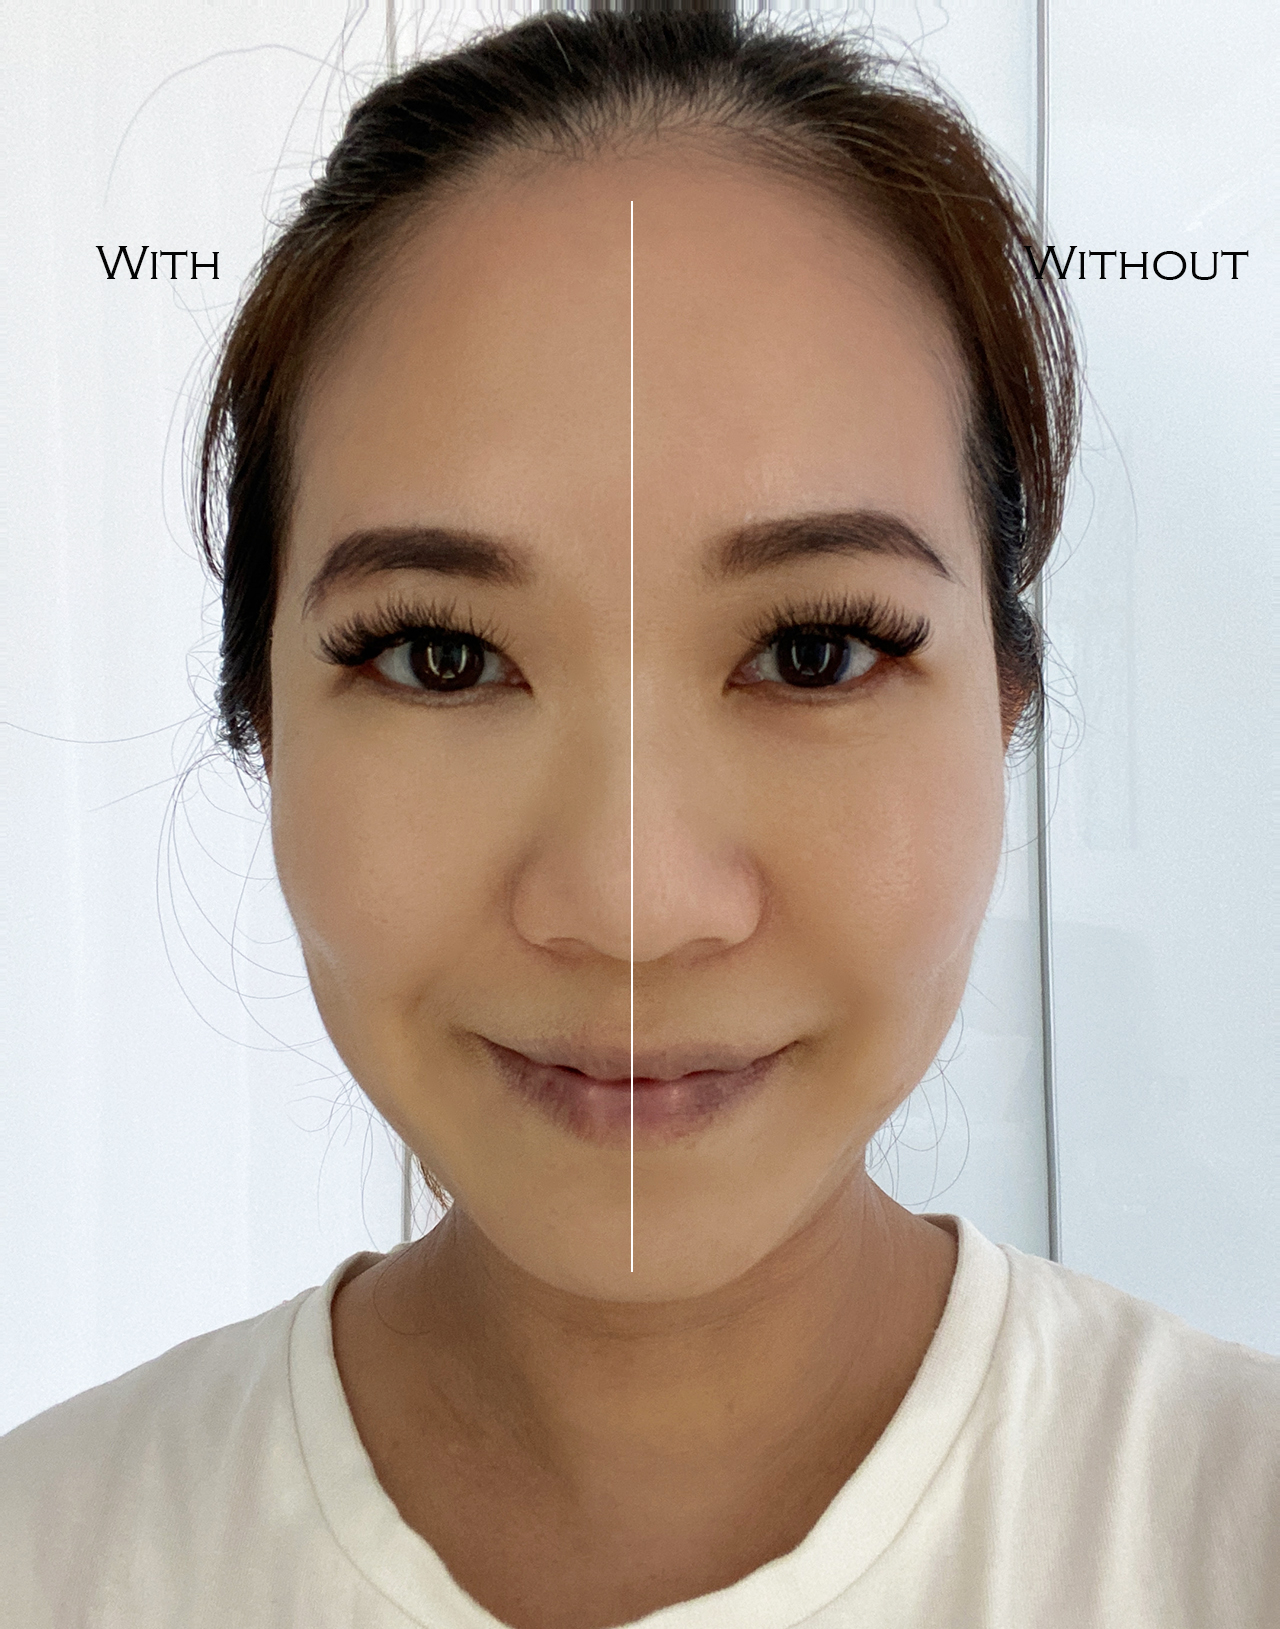 By Terry Hyaluronic Hydra Concealer before after